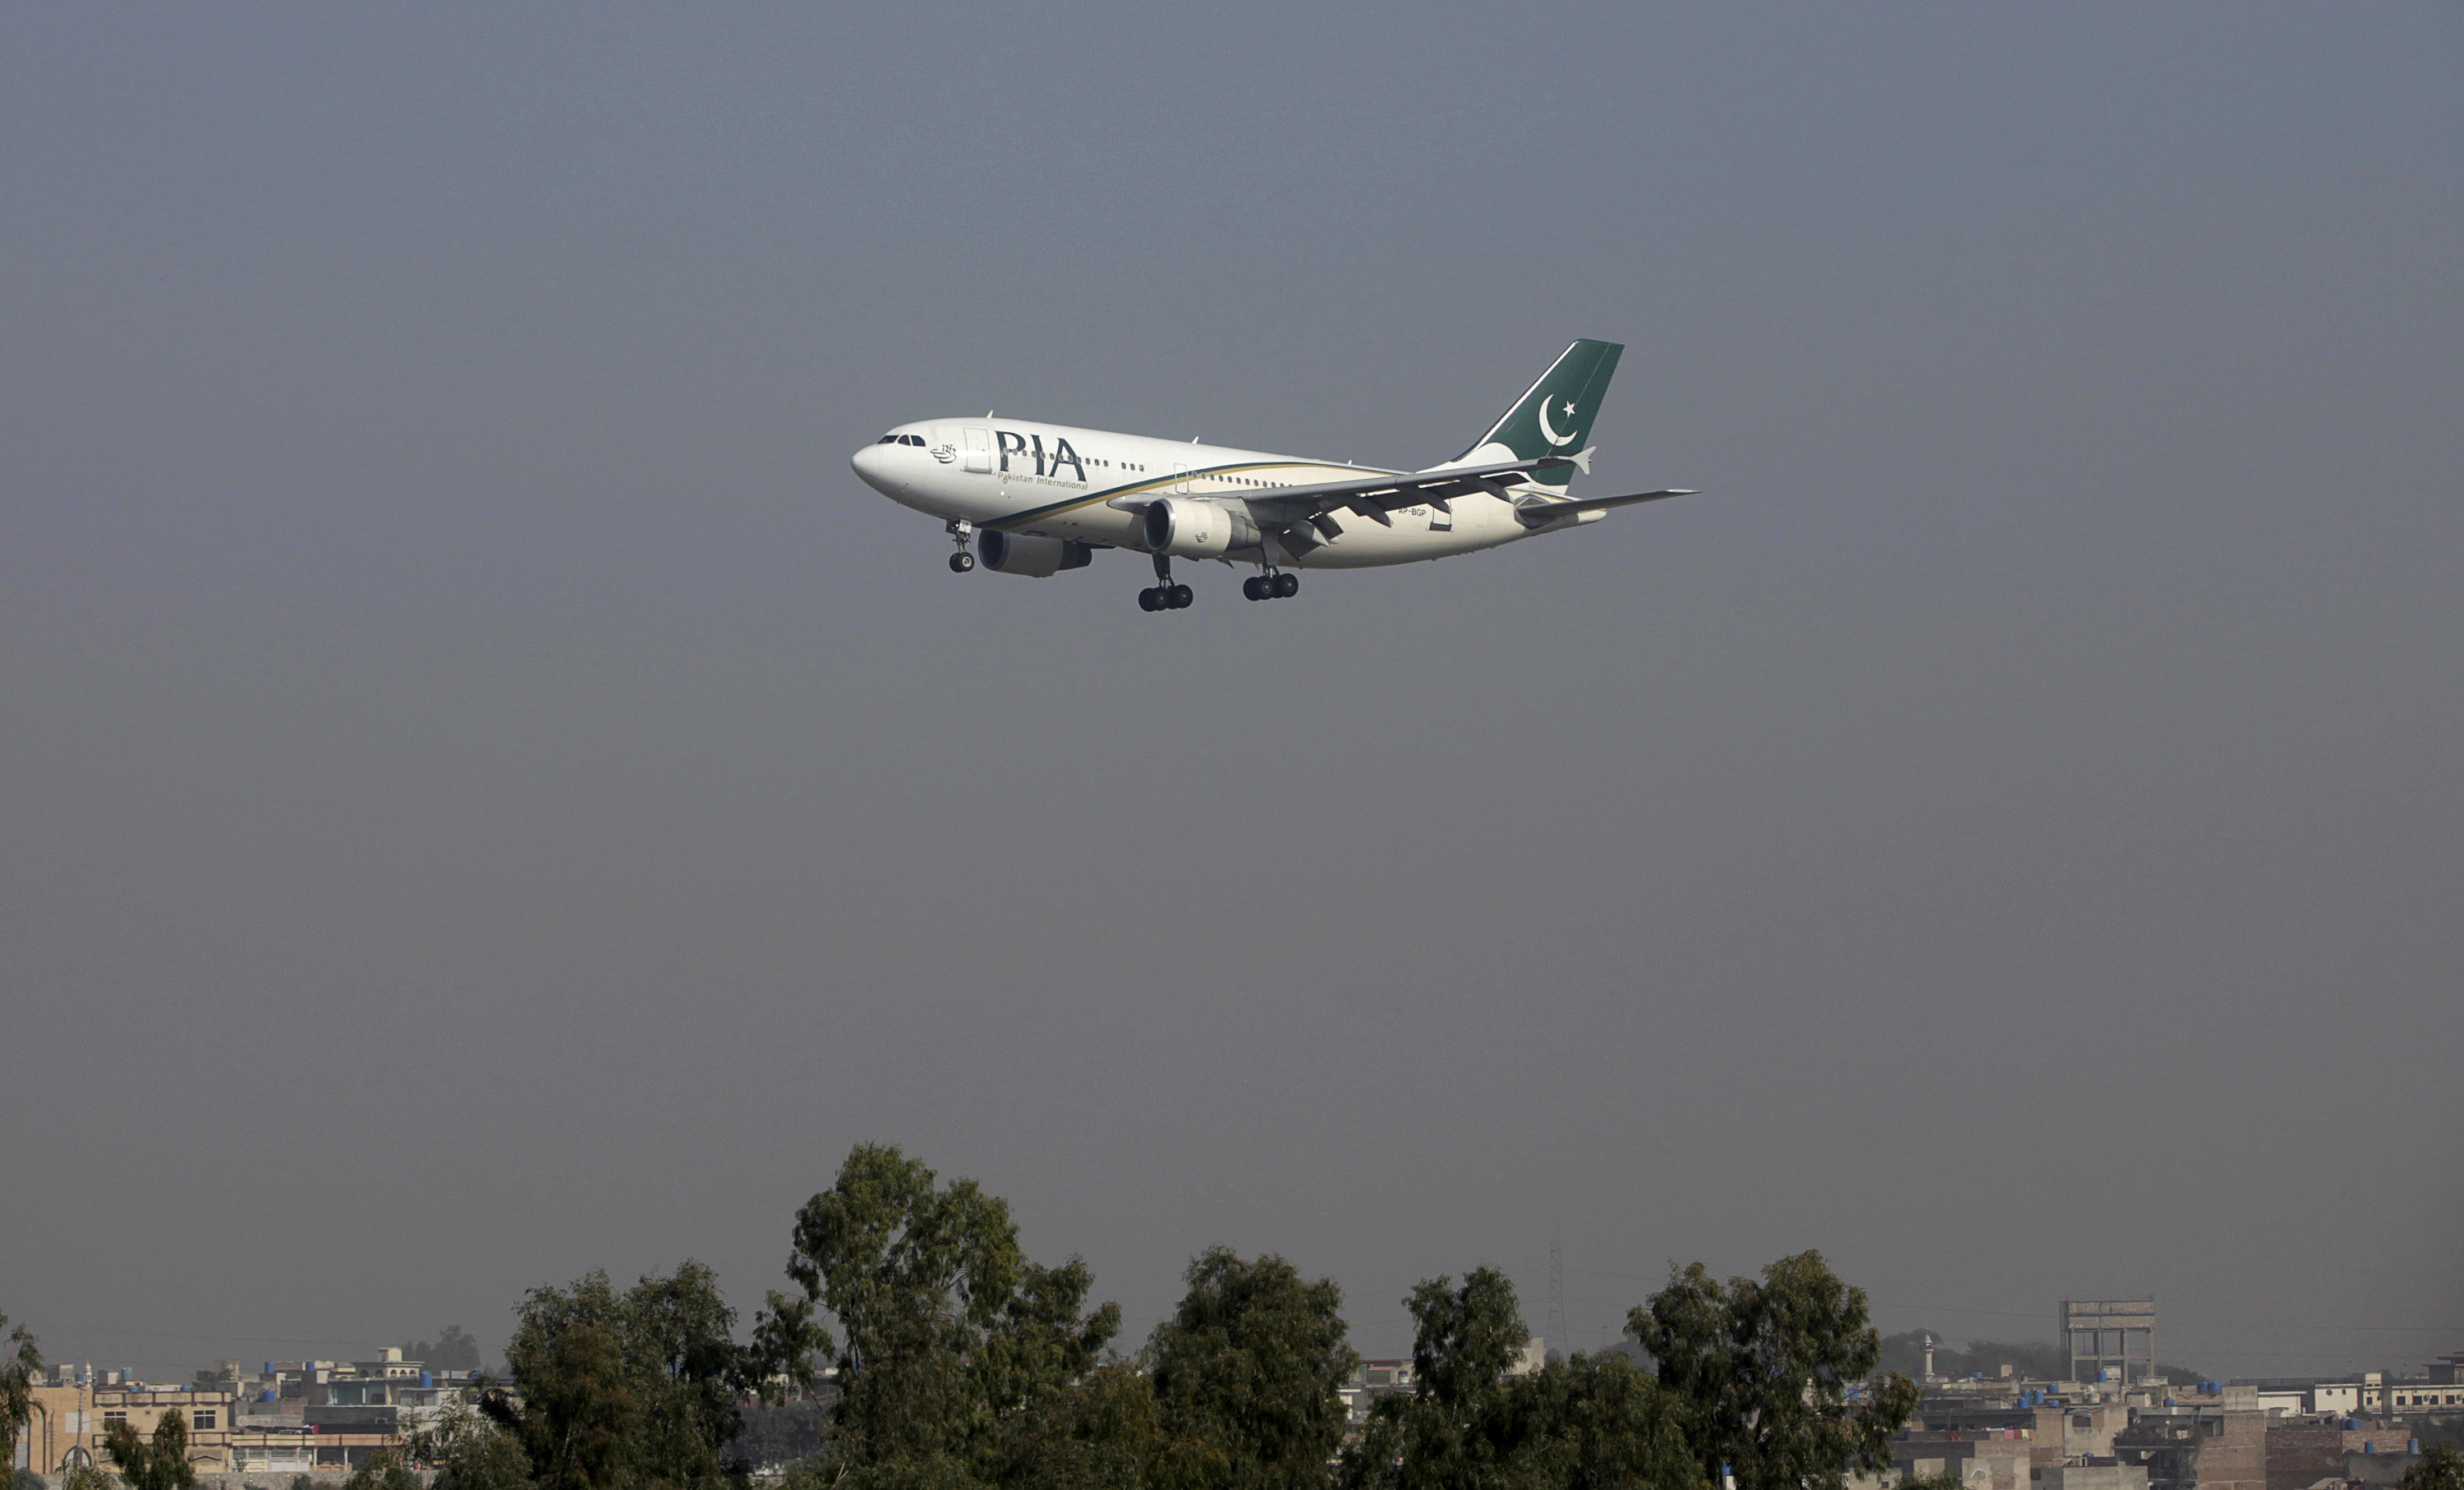 FILE PHOTO - A Pakistan International Airlines (PIA) passenger plane arrives at the Benazir International airport in Islamabad, Pakistan December 2, 2015.  REUTERS/Faisal Mahmood